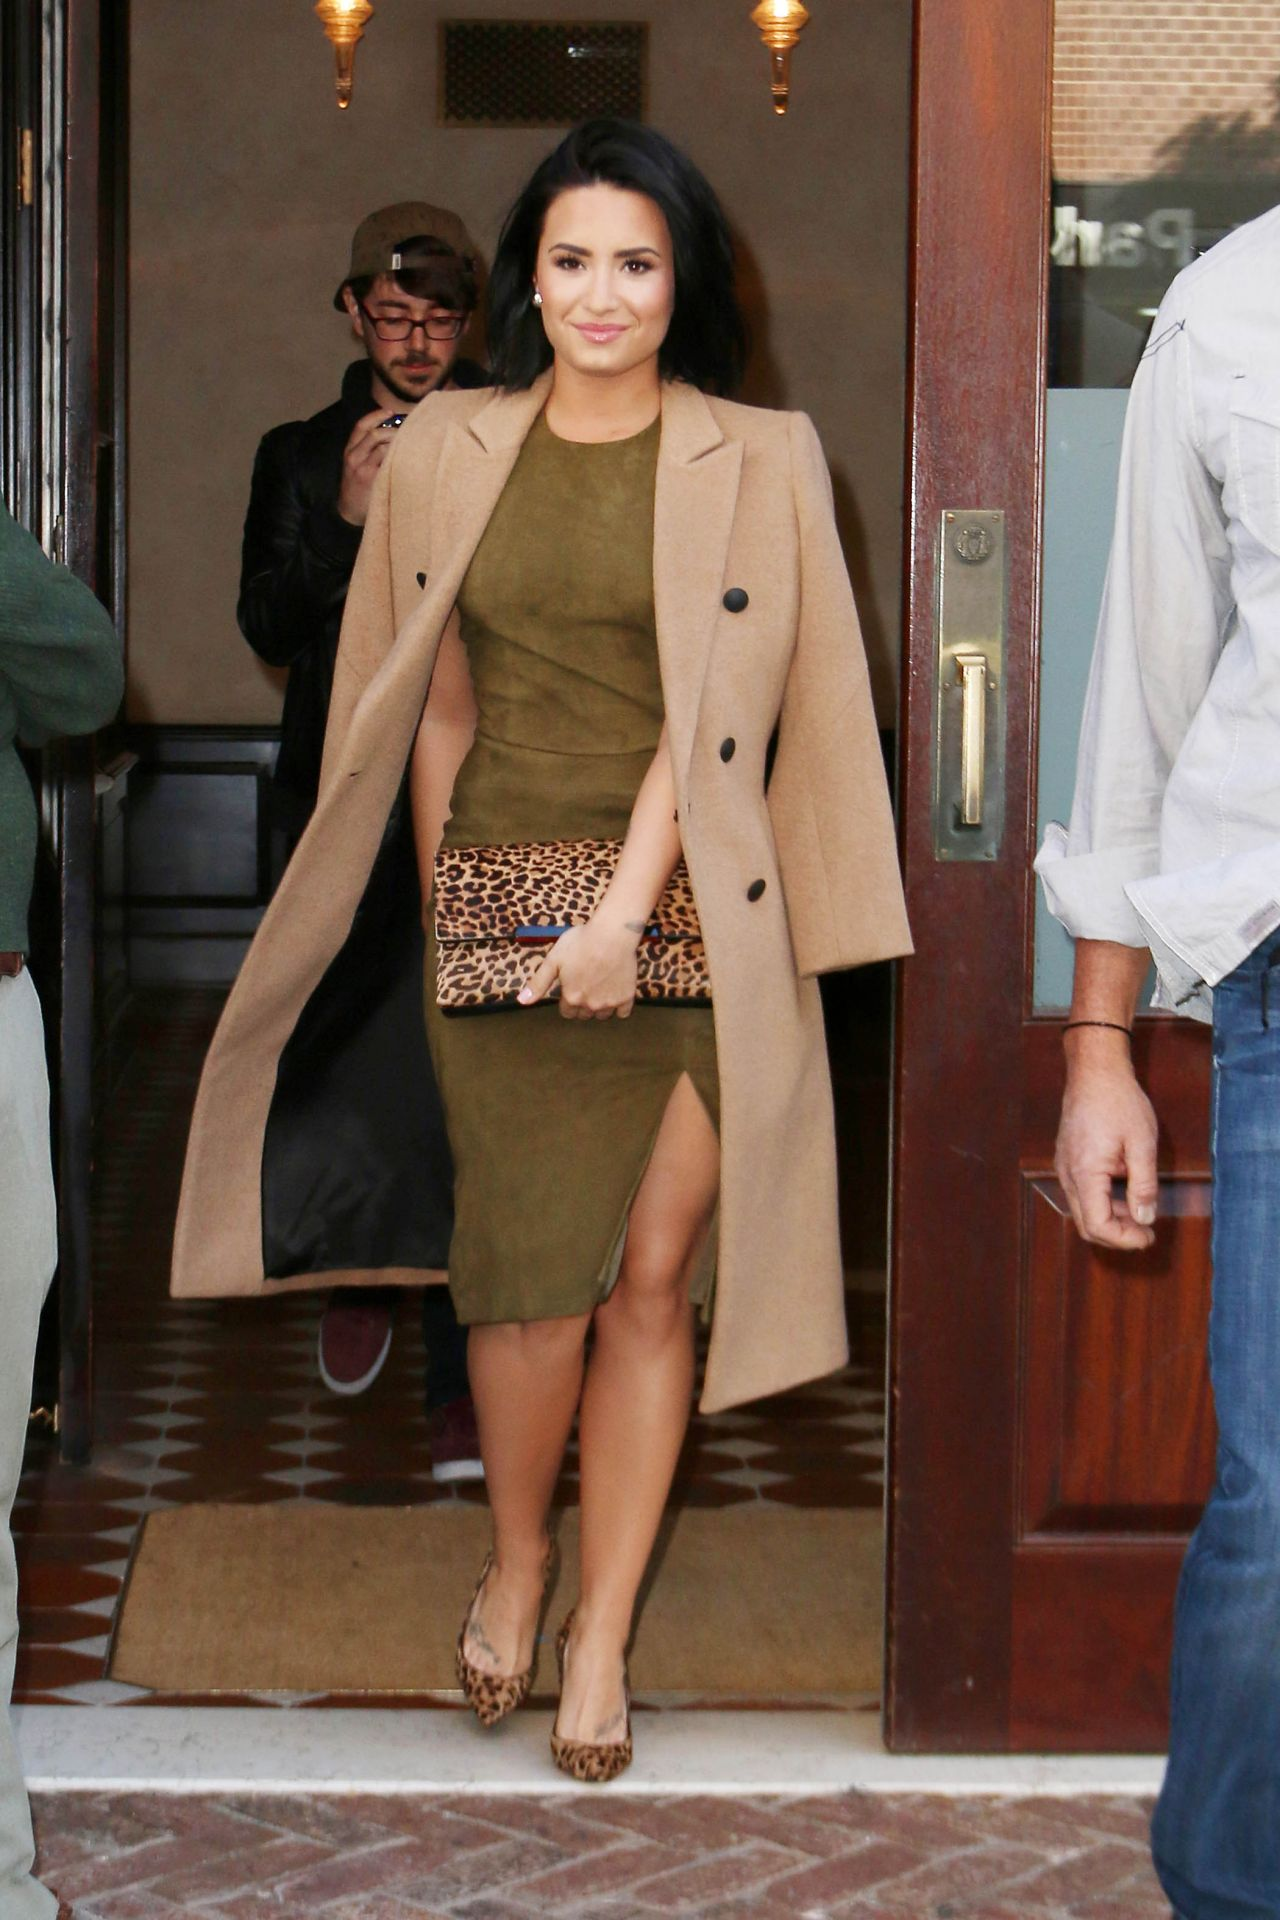 demi-lovato-leaving-the-greenwhich-hotel-in-new-york-city-october-2015_3